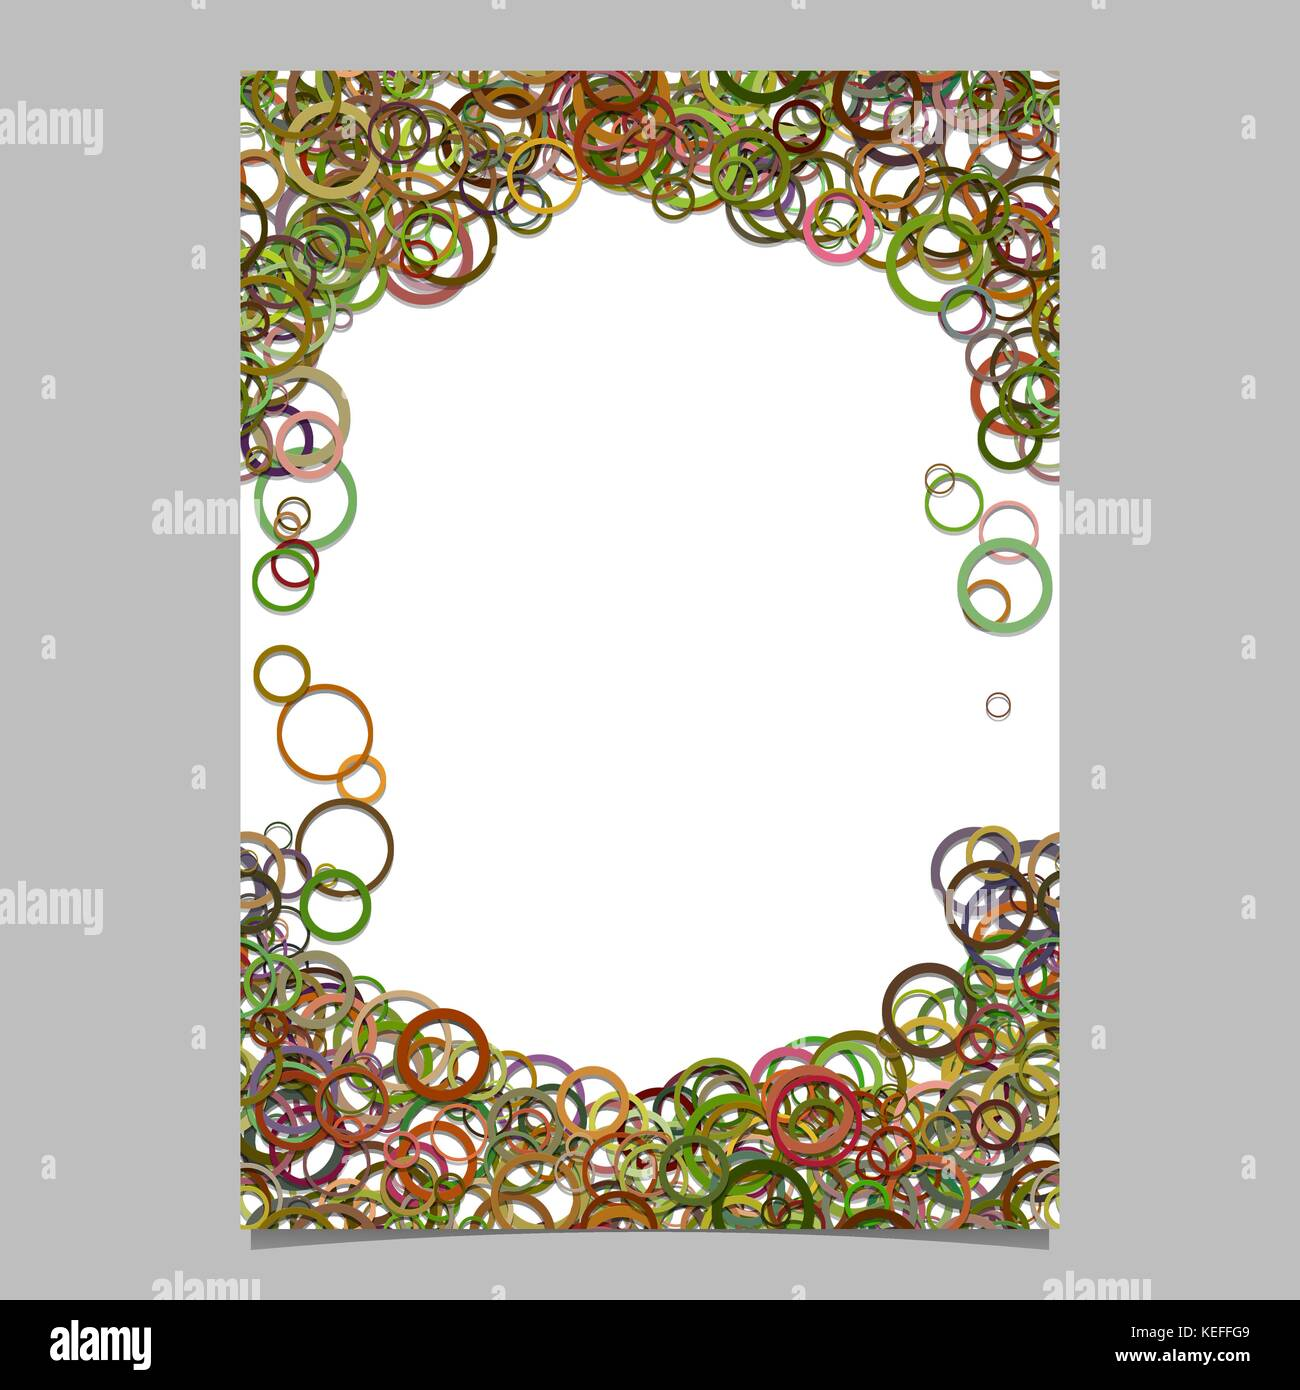 Delightful Color Abstract Random Circle Design Page Template   Blank Stationery Border  Design With Rings